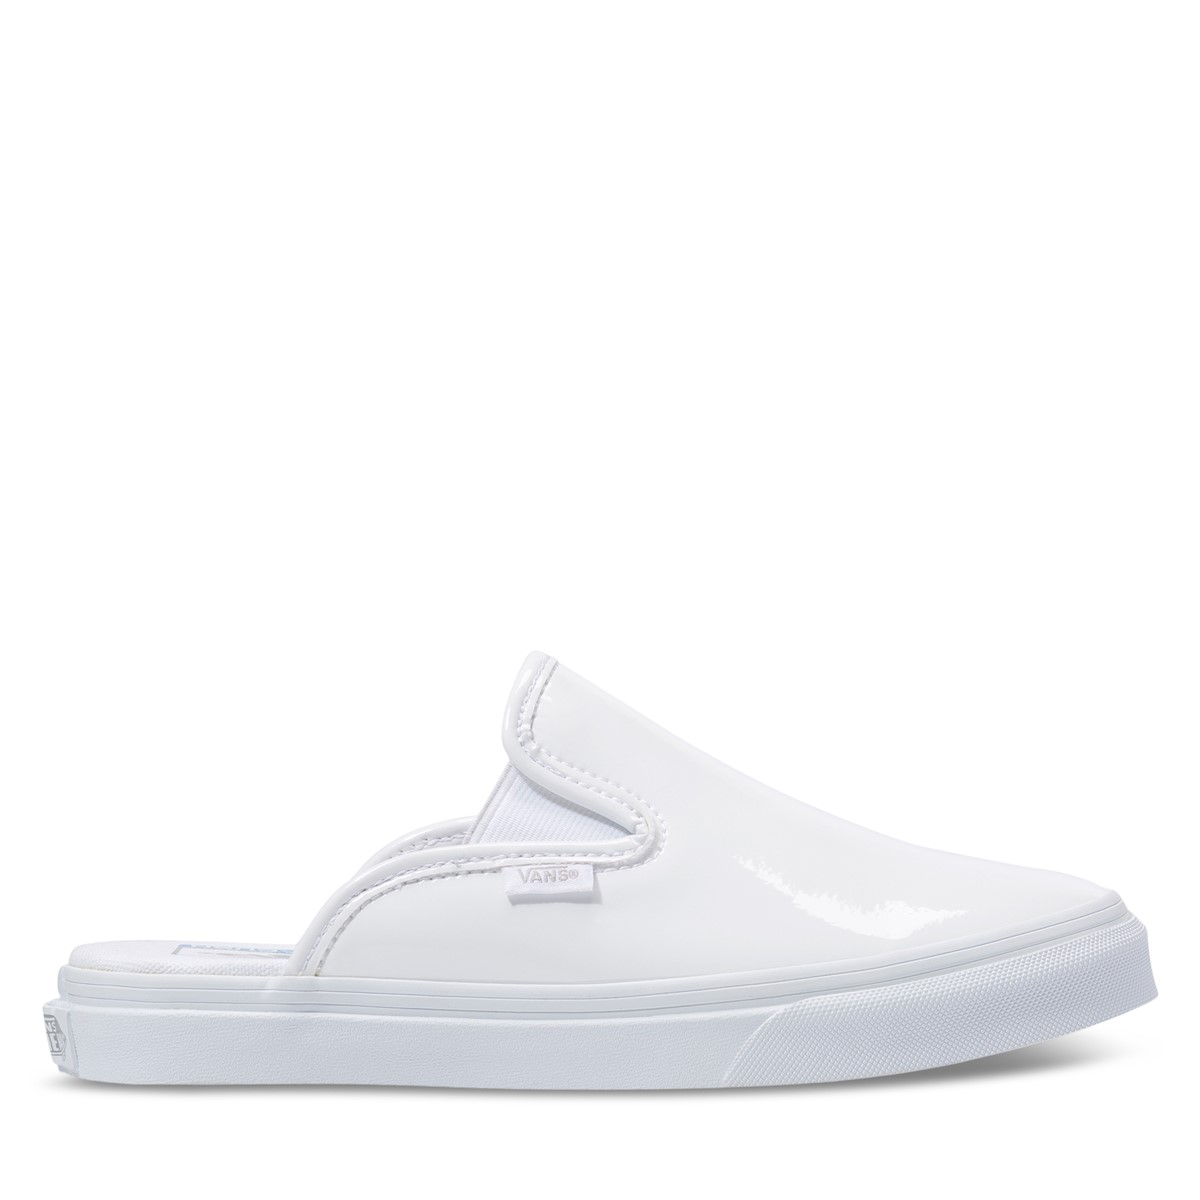 Women's Mule SF Slip-Ons in White